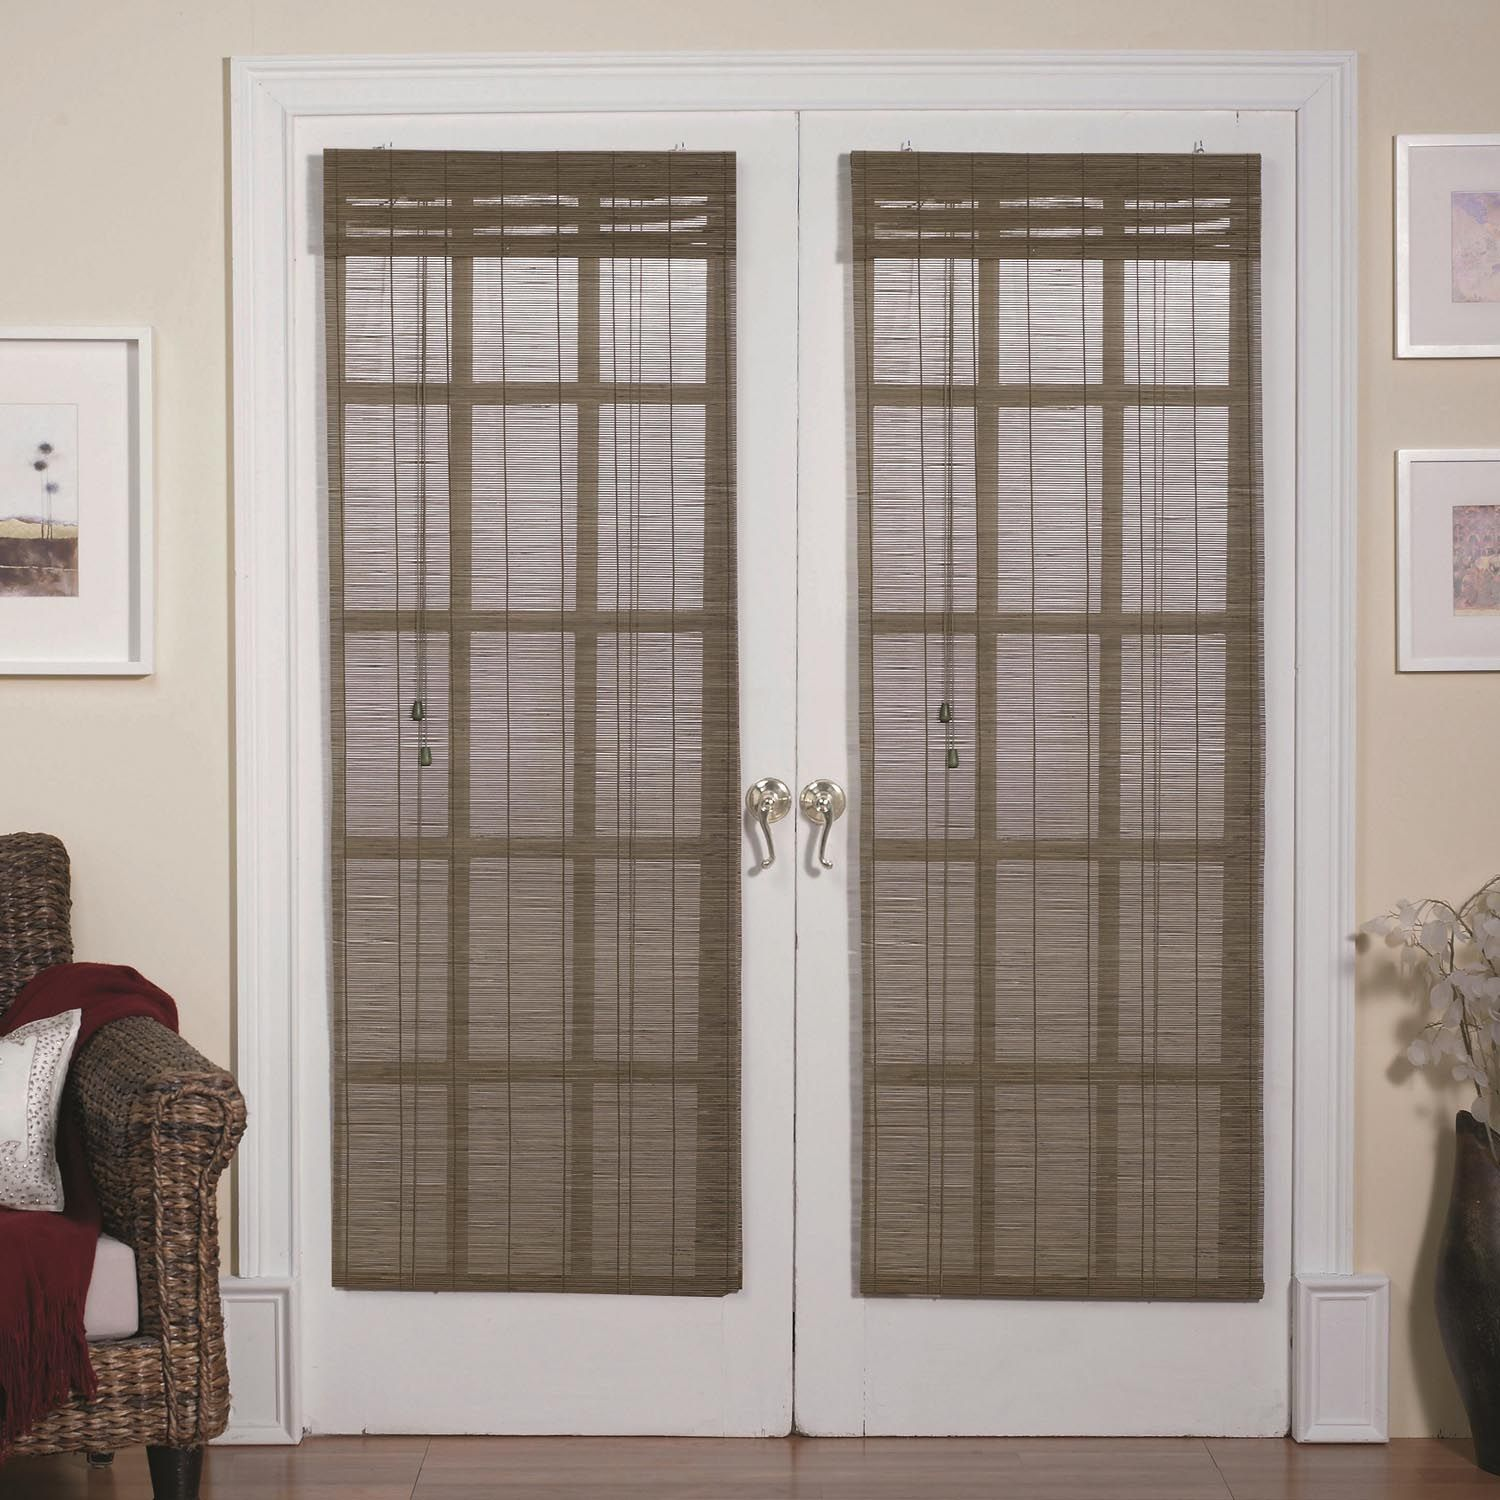 Magnetic roman shades for french doors window shades for Door window shades blinds